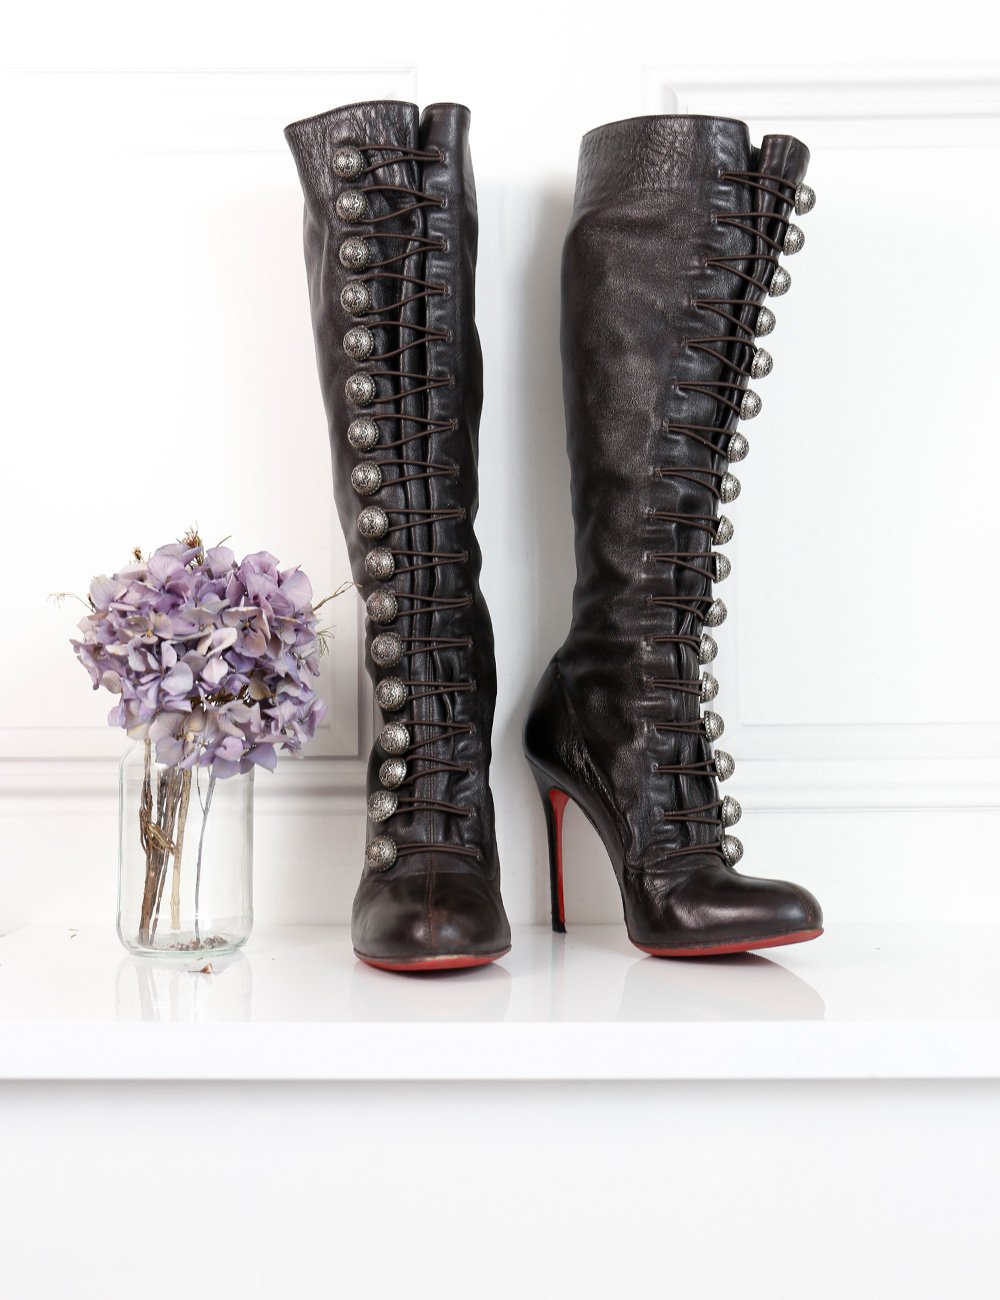 Louboutin dark brown Ronfifi Alta 100 buttoned boots 4.5UK- My Wardrobe Mistakes